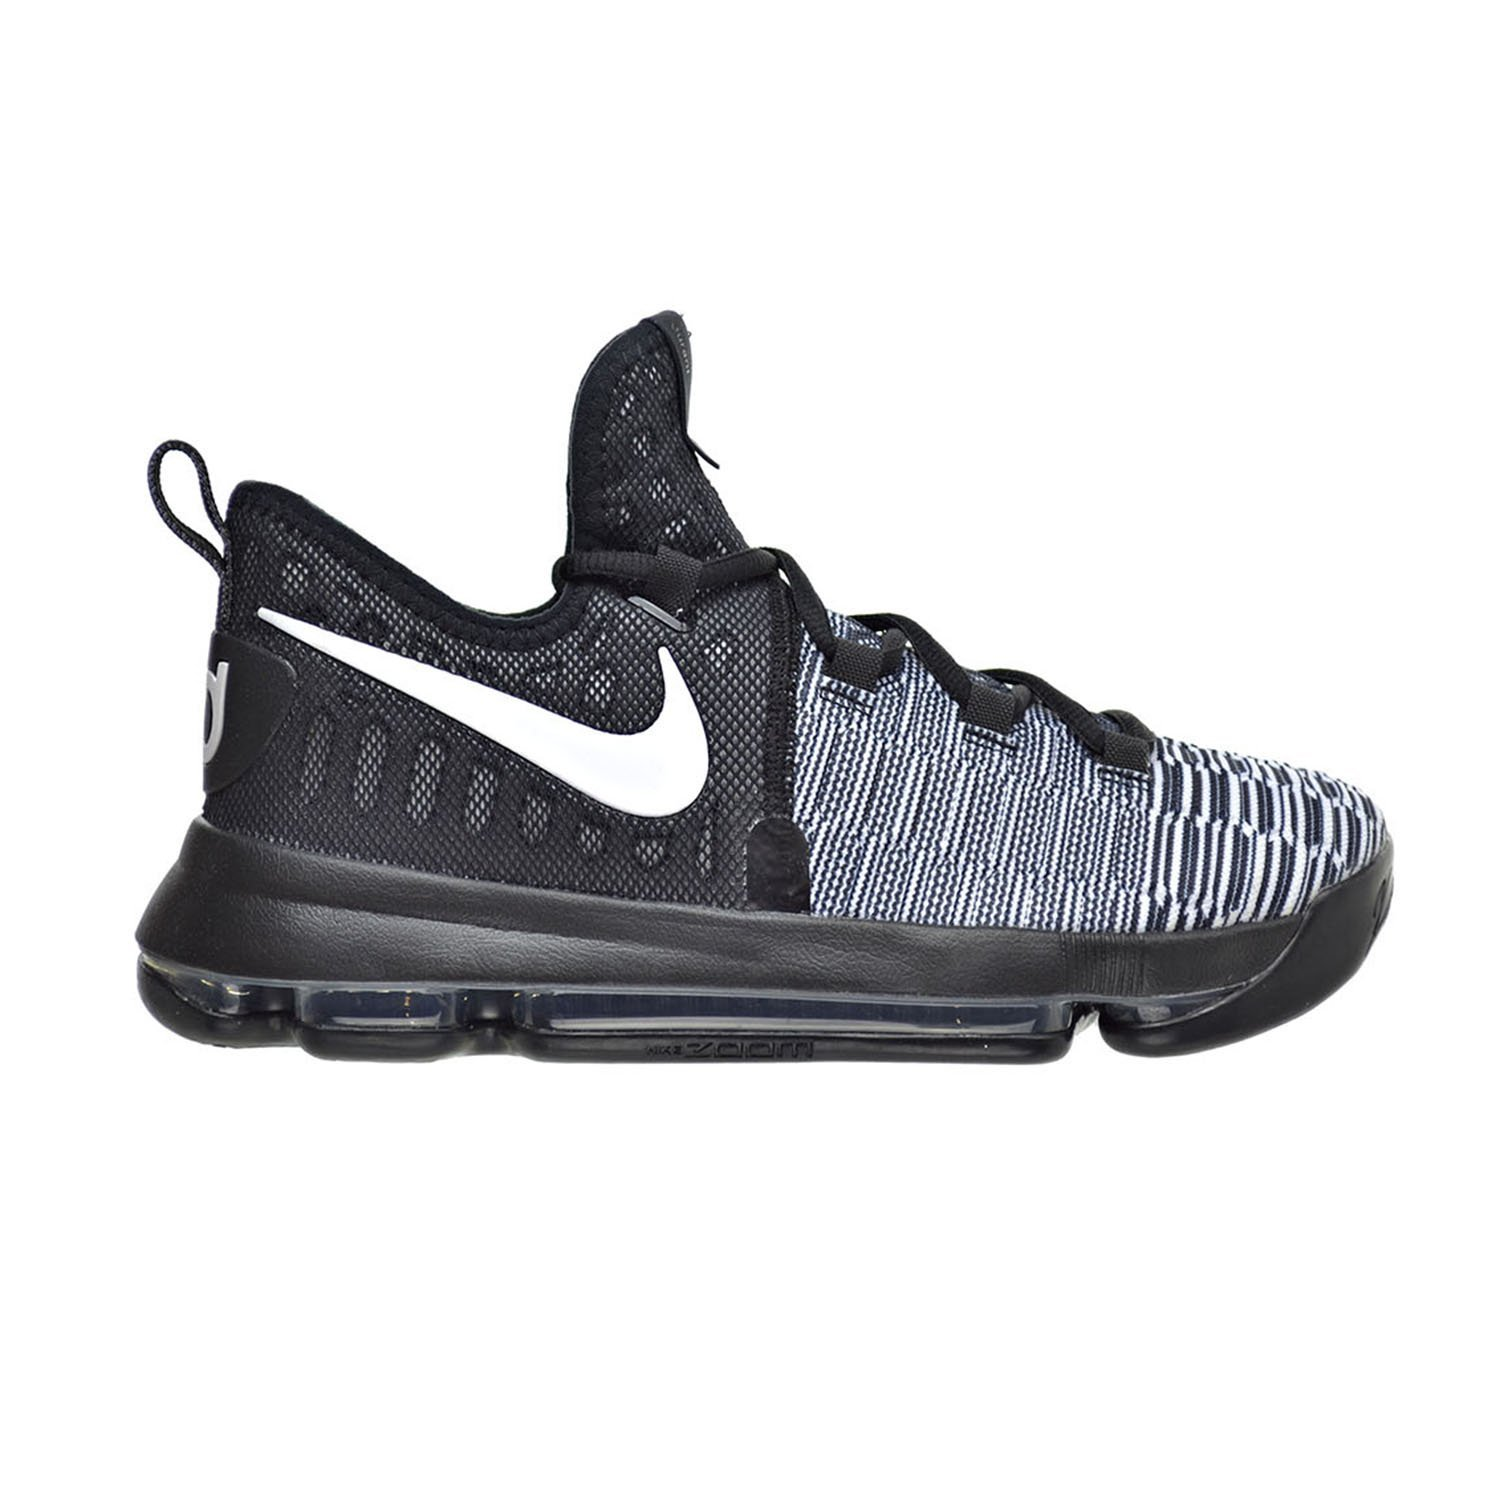 on sale 22475 7546e Get Quotations · Nike Zoom KD 9 (GS) Black White